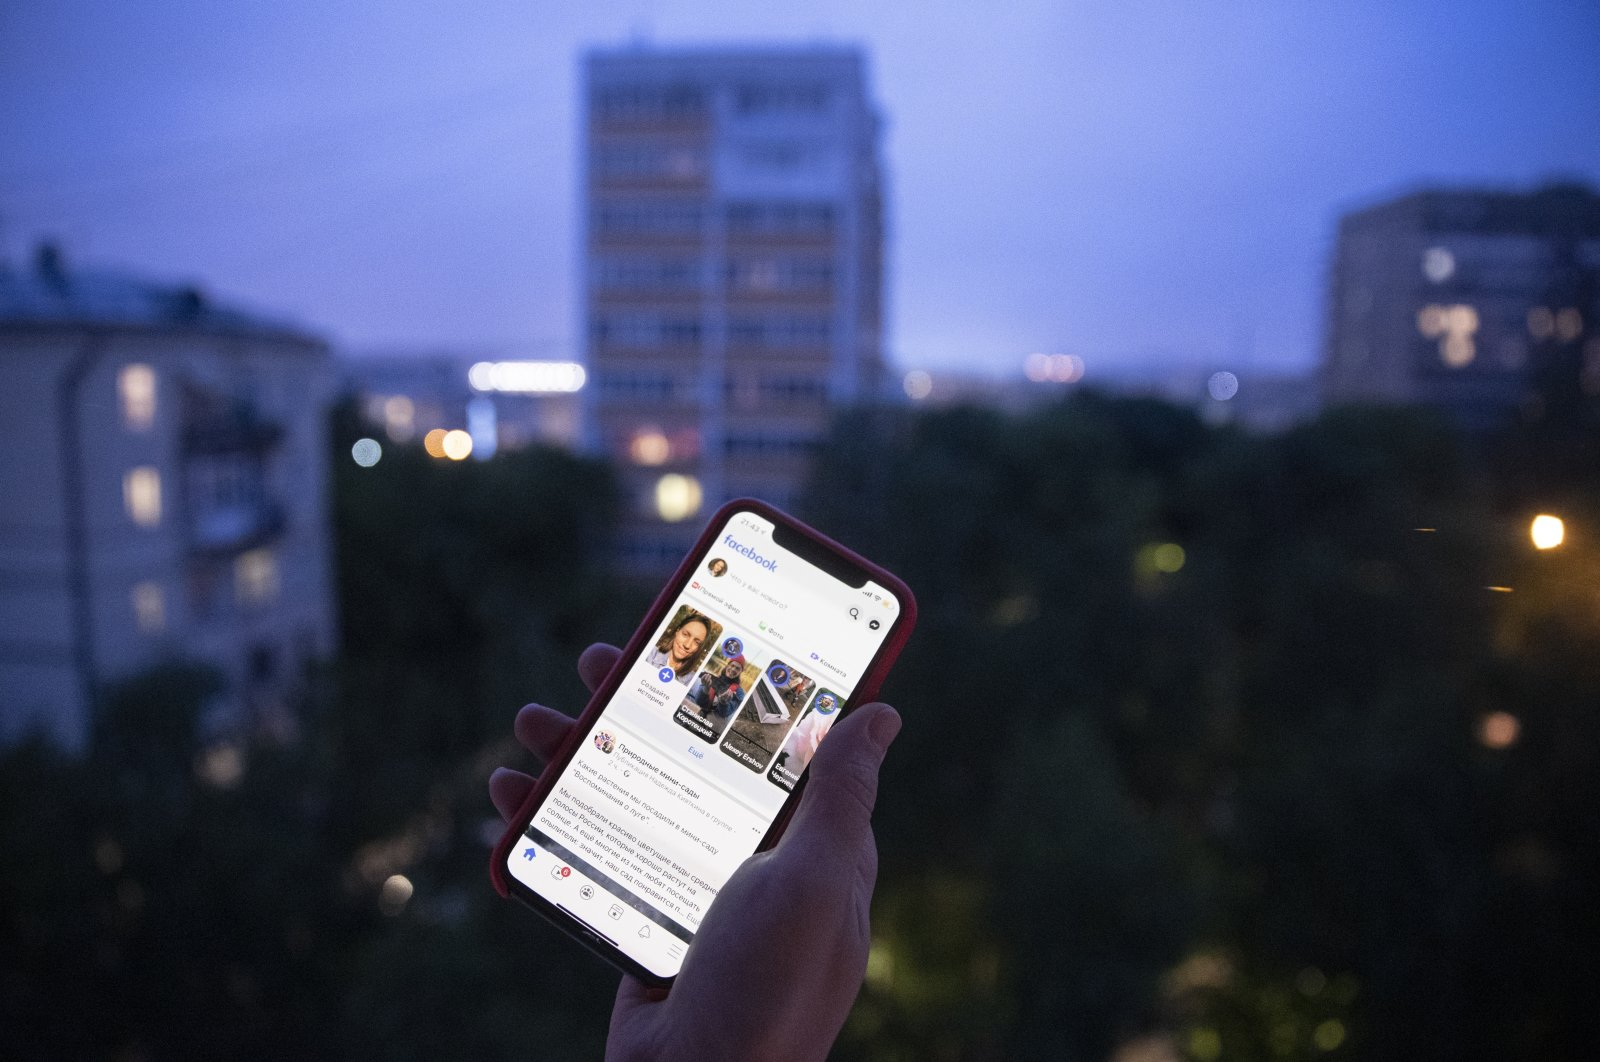 A user holds a smartphone with an opened Facebook page in Moscow, Russia, June 10, 2021. (AP Photo)